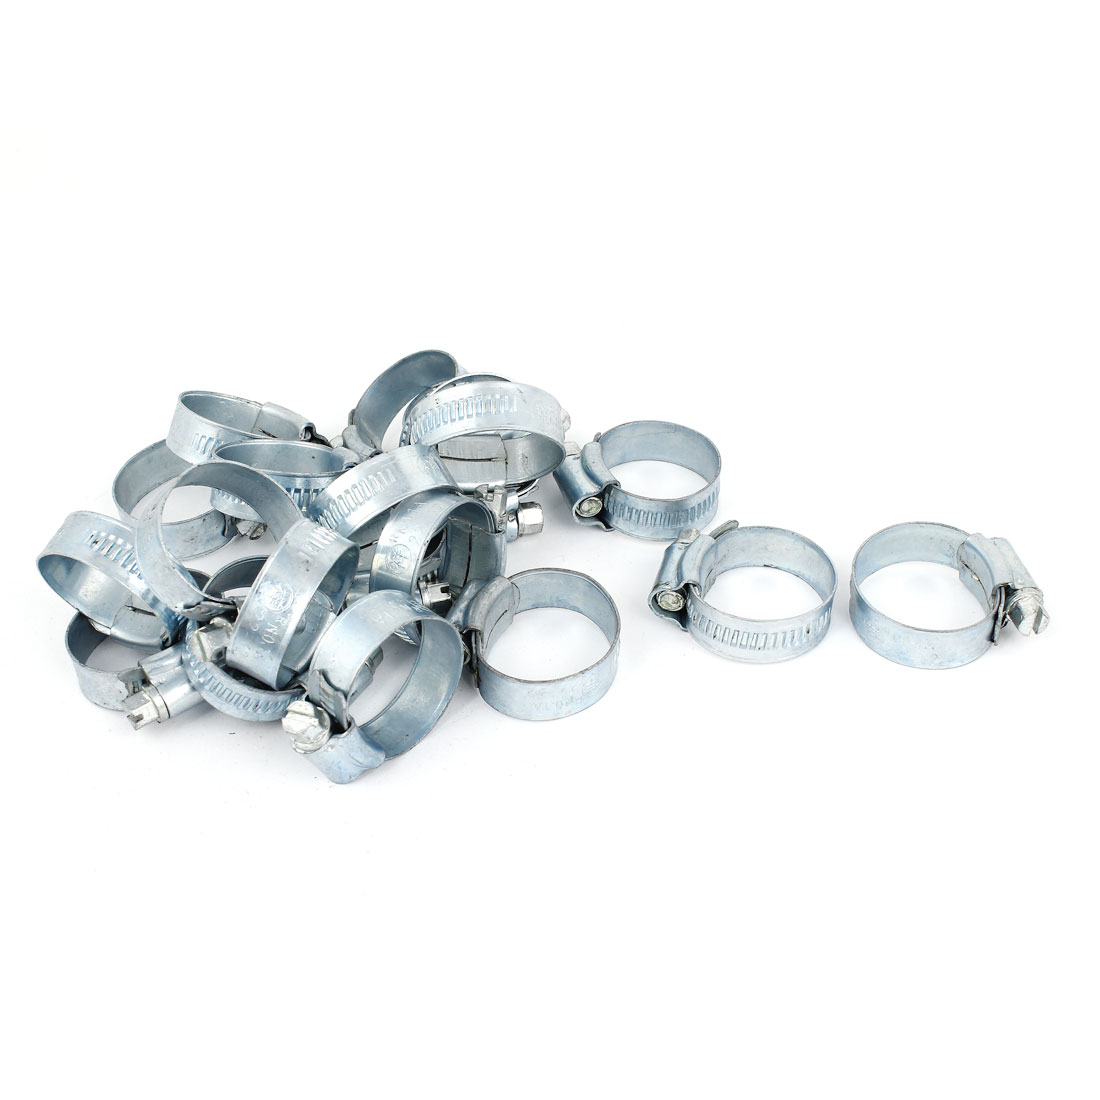 20 Pcs 22-32mm Range 12mm Width Adjustable Band Worm Drive Hose Clamps